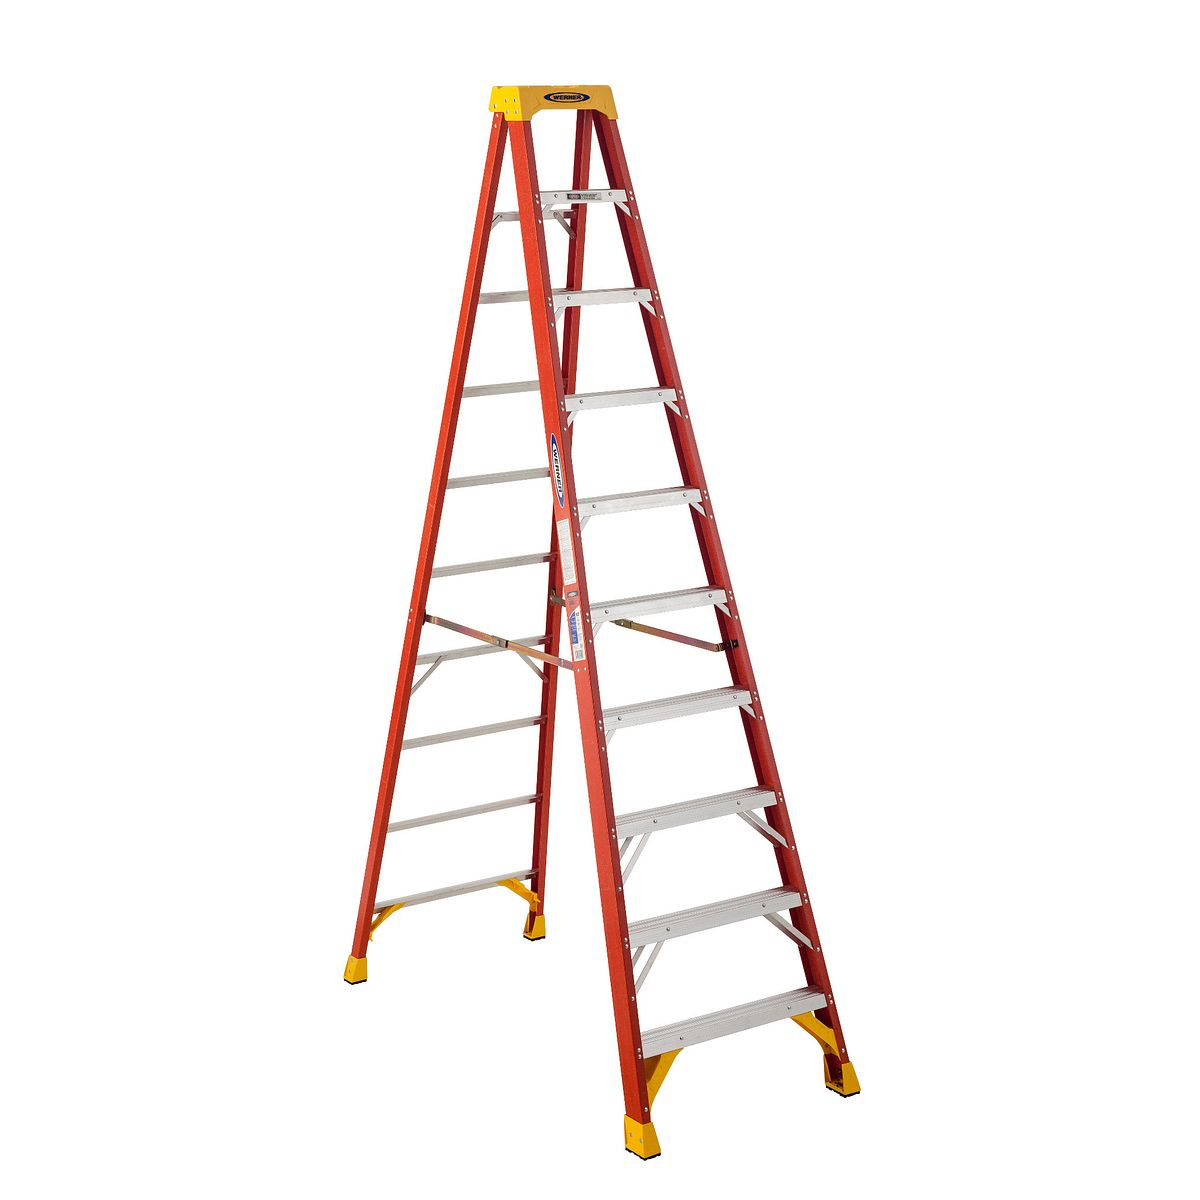 Image result for 10' werner fiberglass step ladder 6210